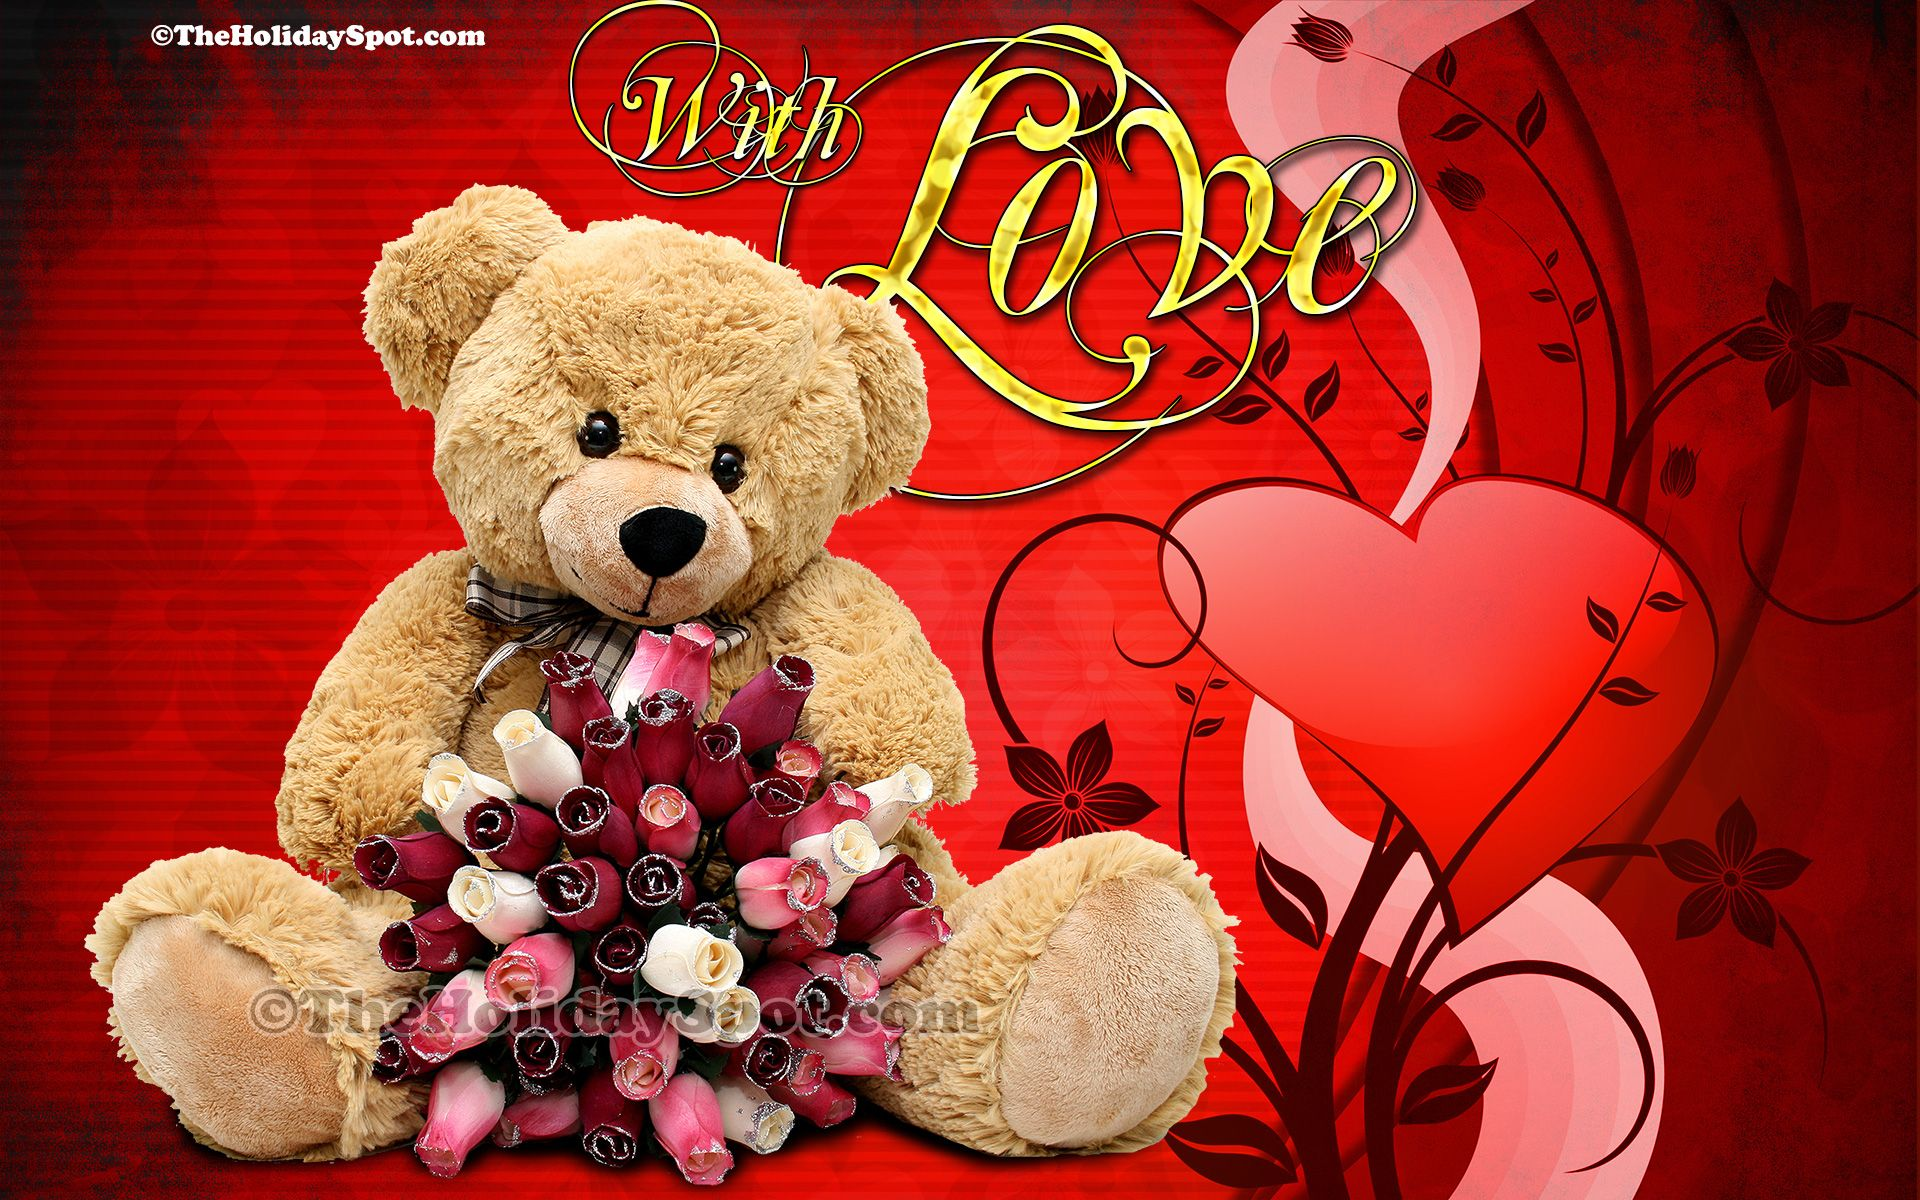 83 Free Valentine's Day HD Wallpapers for Download